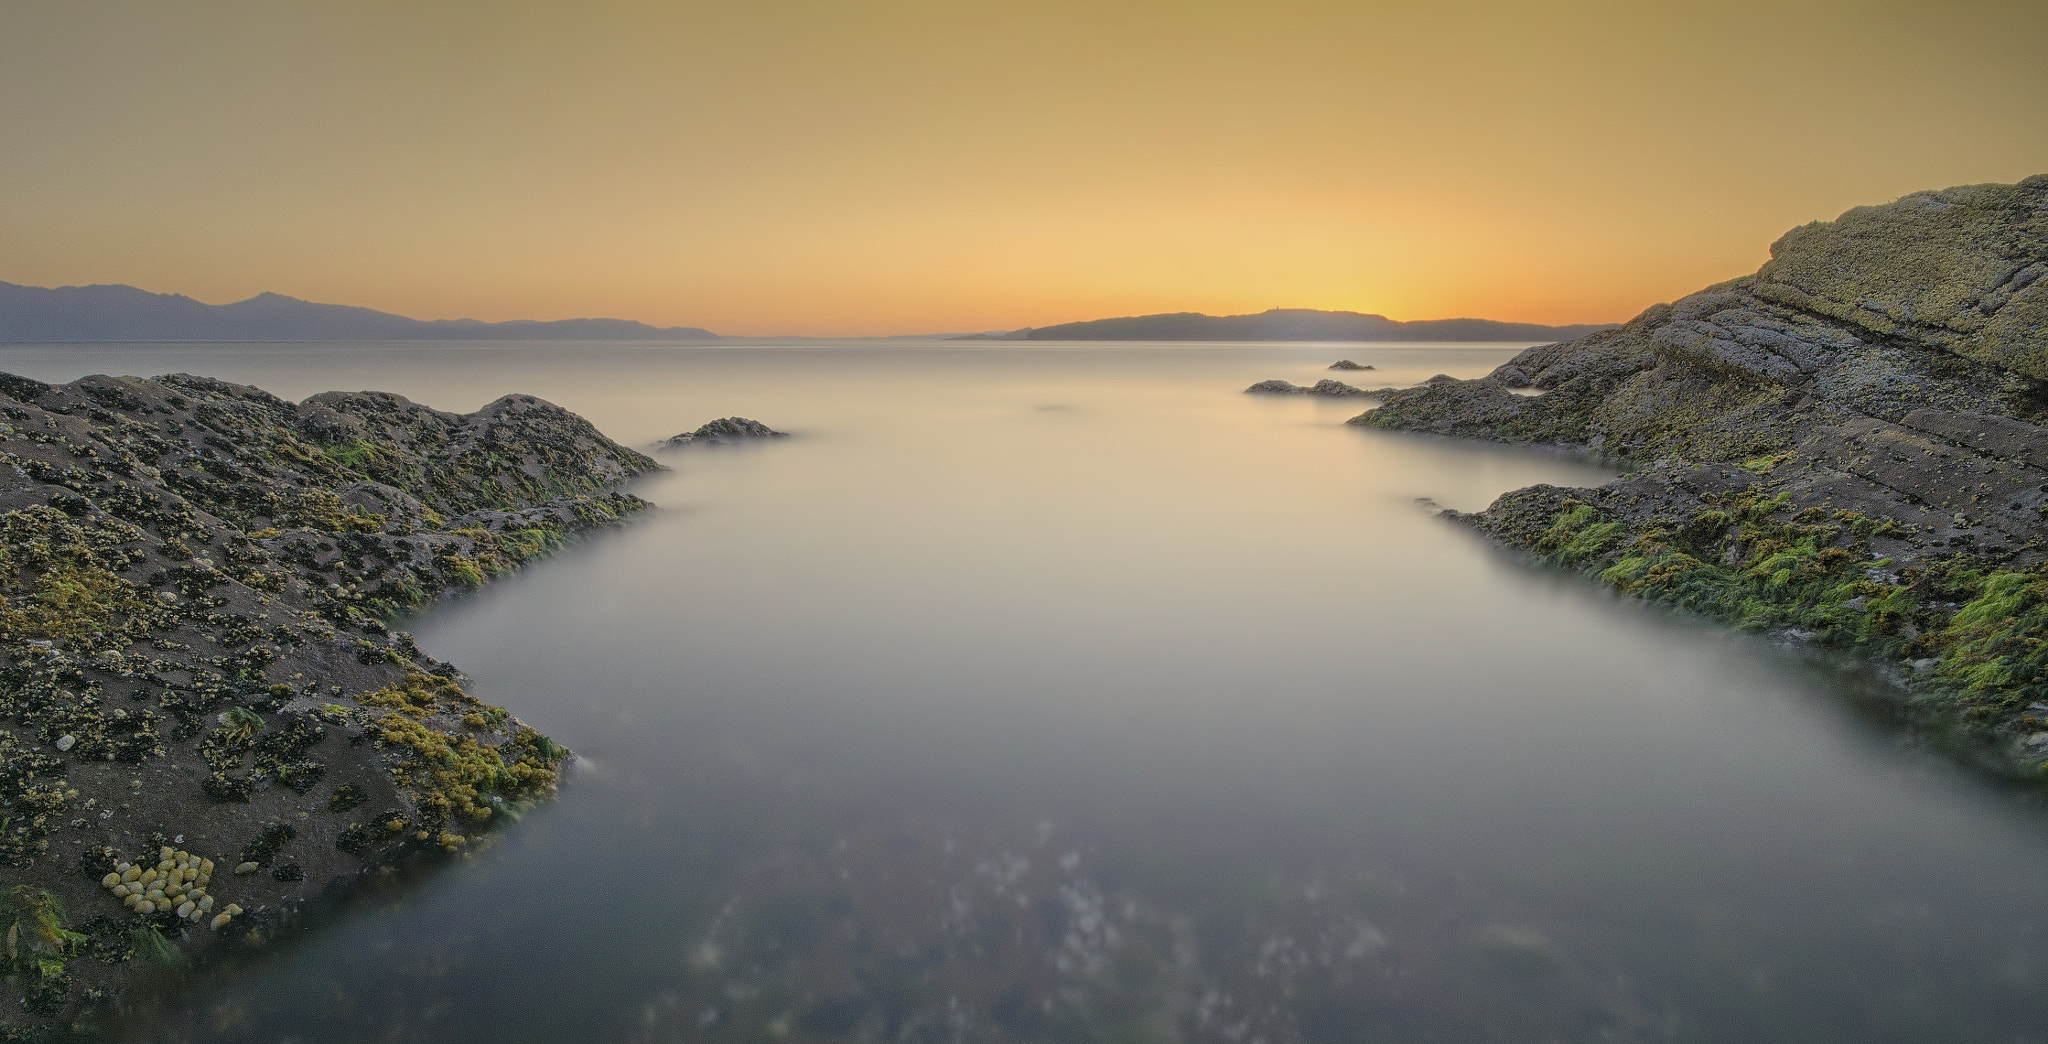 Photograph Portencross rocks by Ewan Adamson on 500px